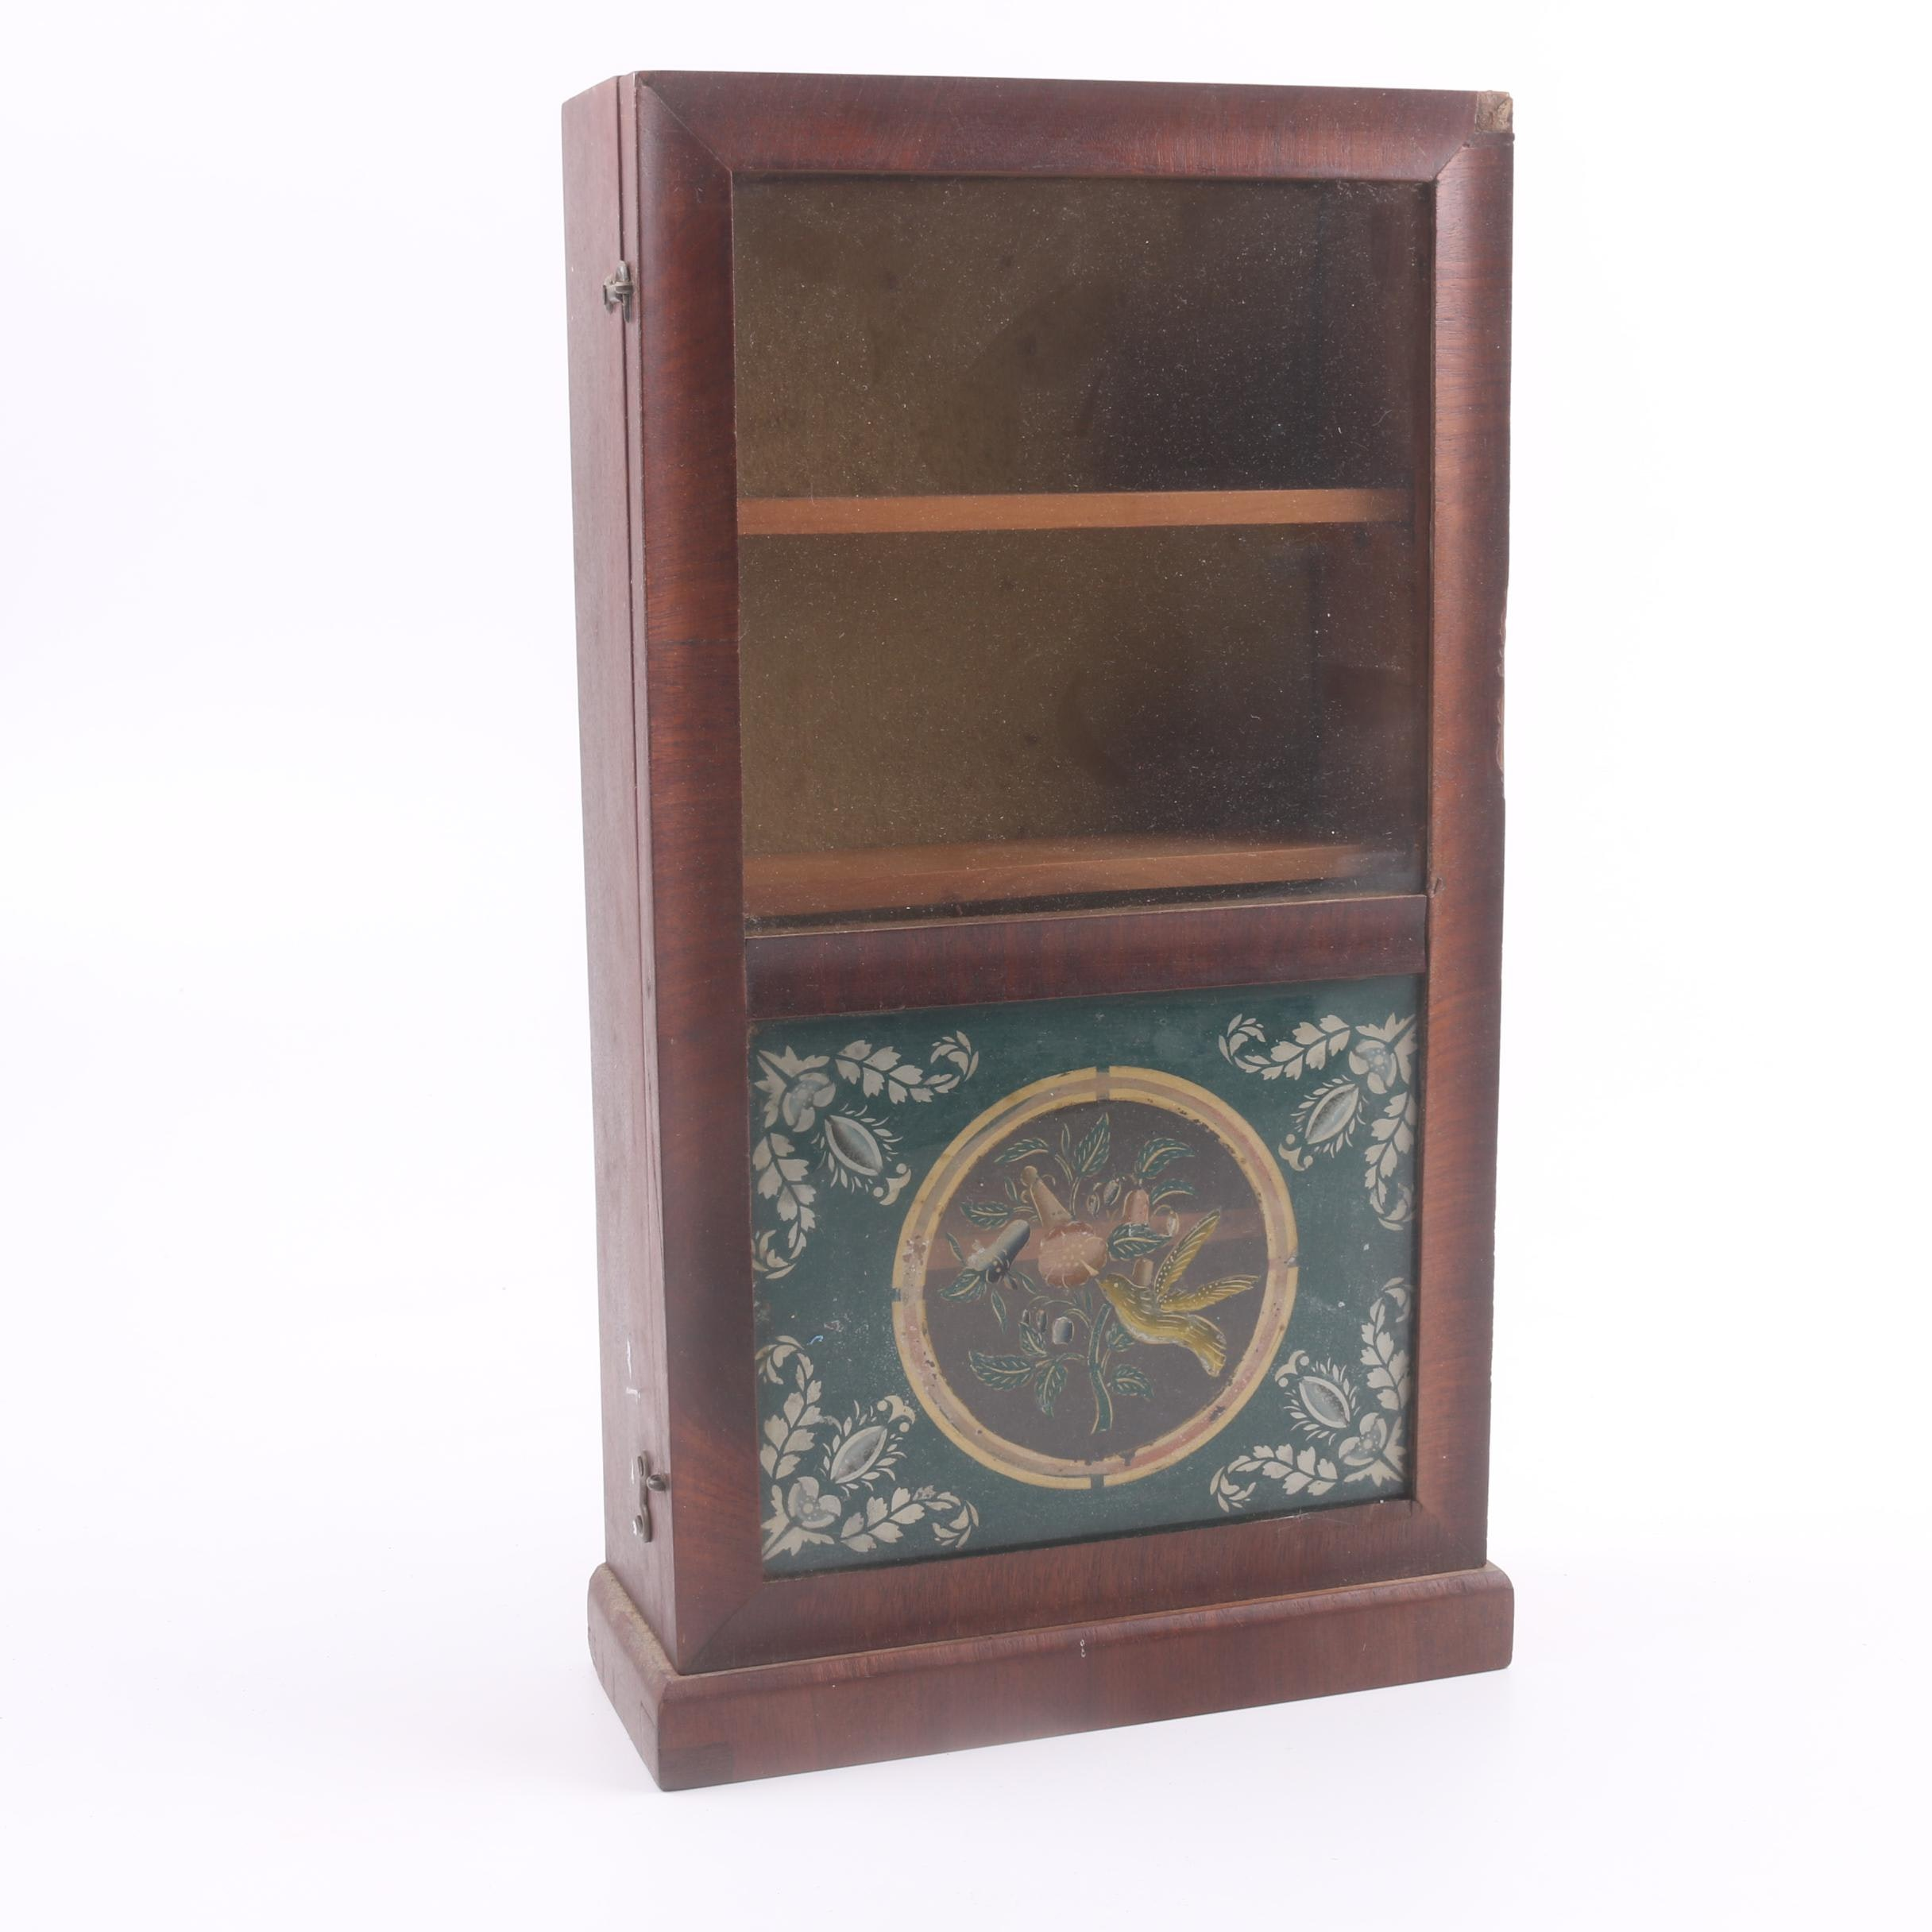 Antique Diminutive Clock Case Cabinet with Reverse Painted Panel